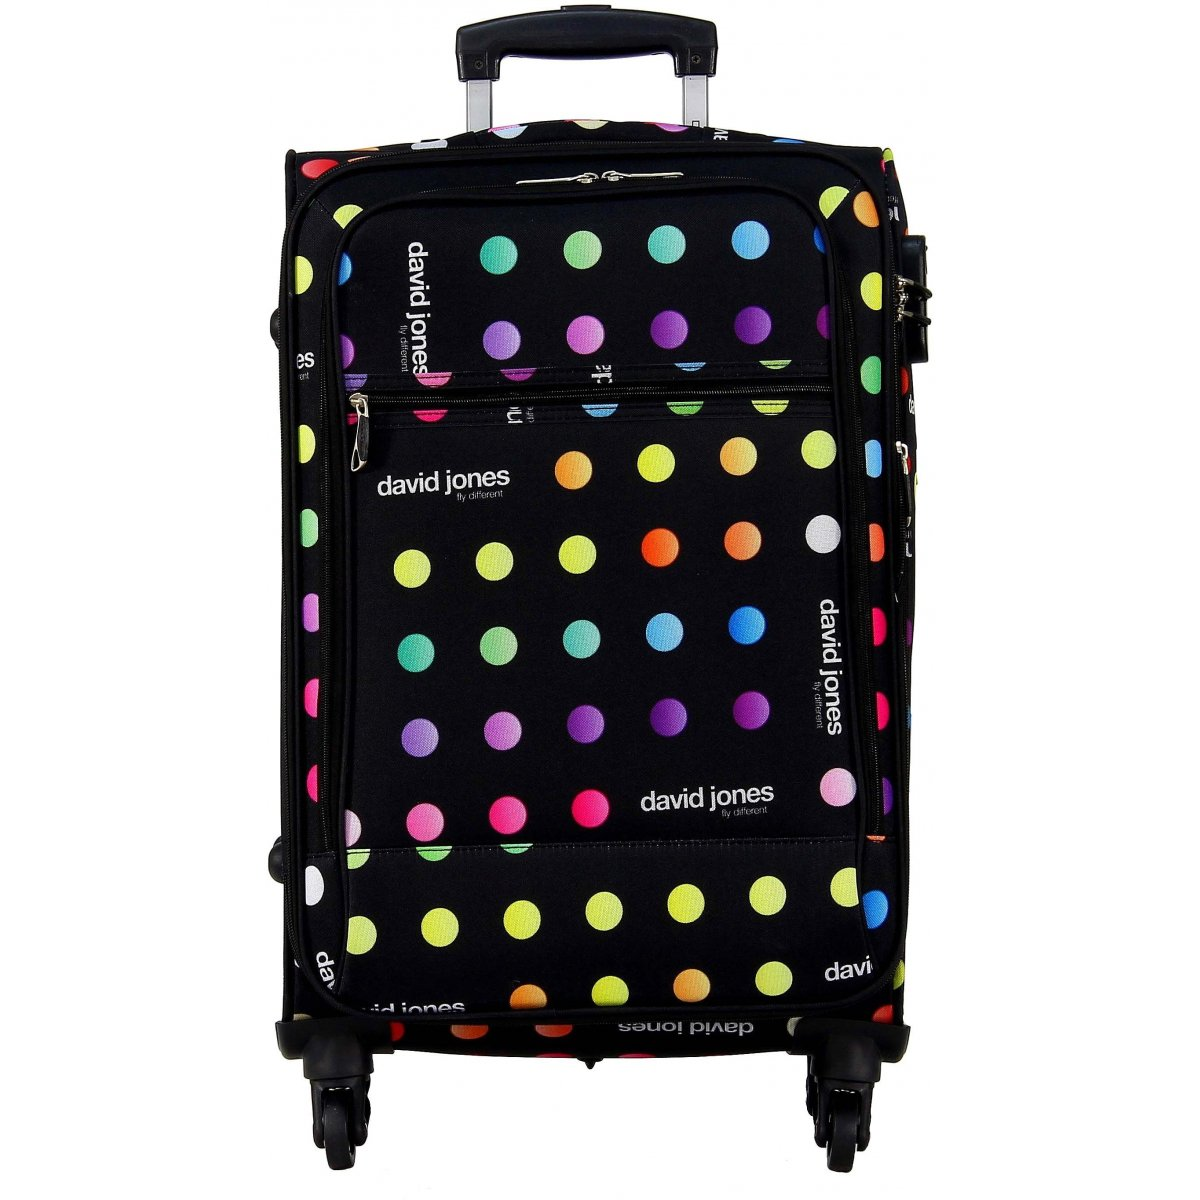 valise souple david jones taille m 66cm ba50171m couleur principale little pois valise. Black Bedroom Furniture Sets. Home Design Ideas